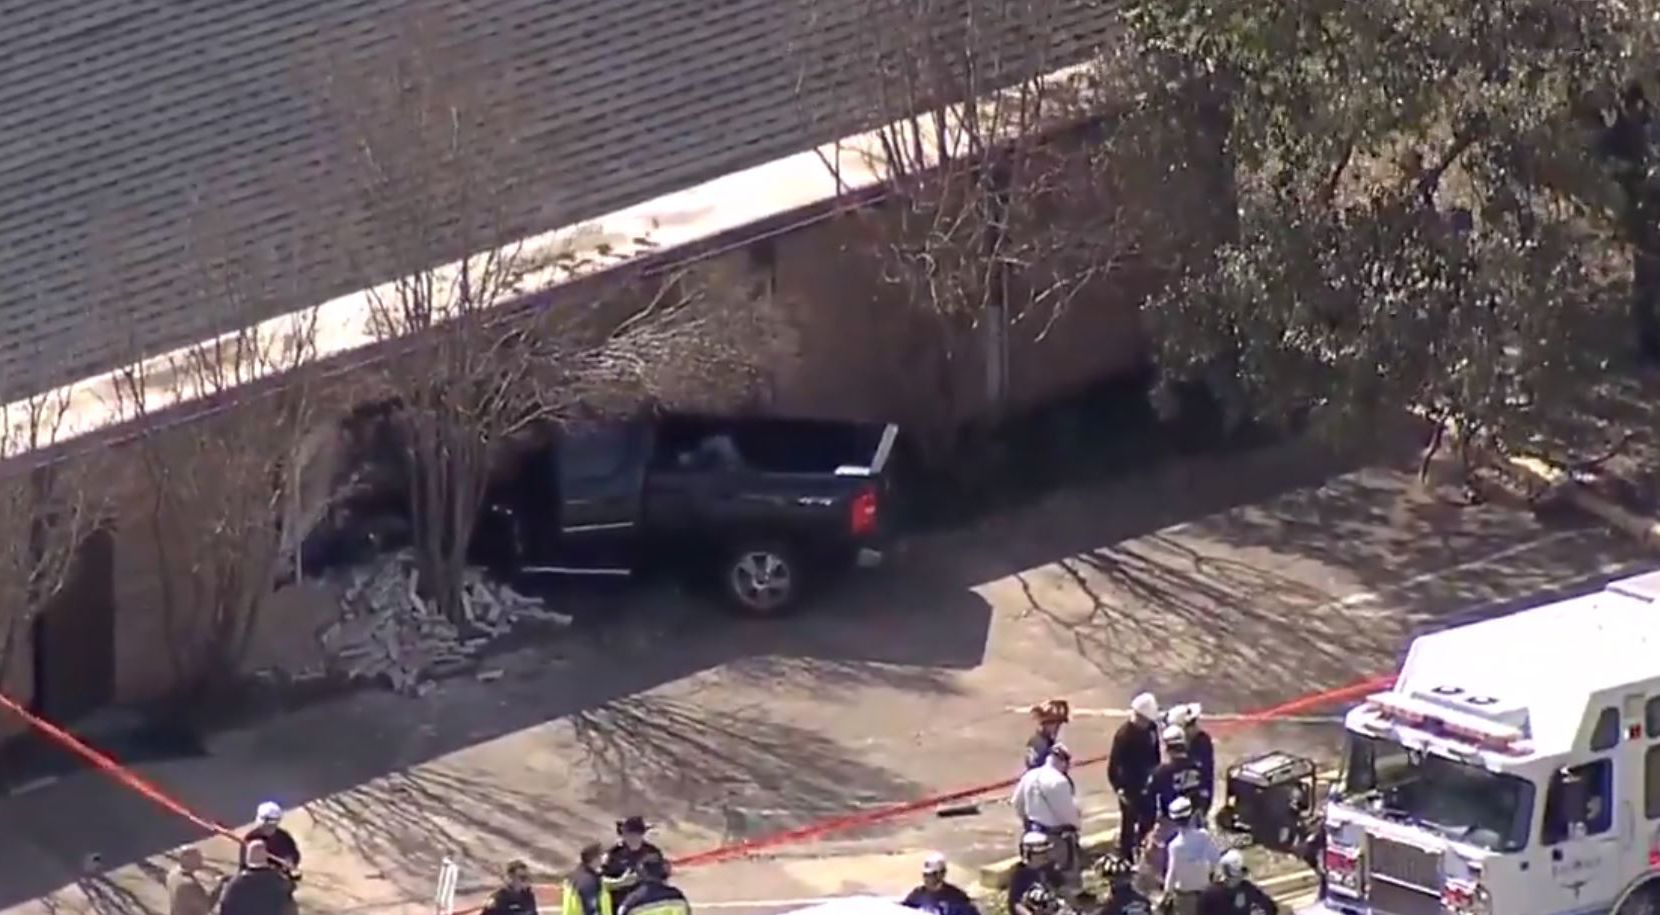 Footage posted online by television stations showed a significant portion of the large black truck wedged into the structure next to the wall's crumbled remains.